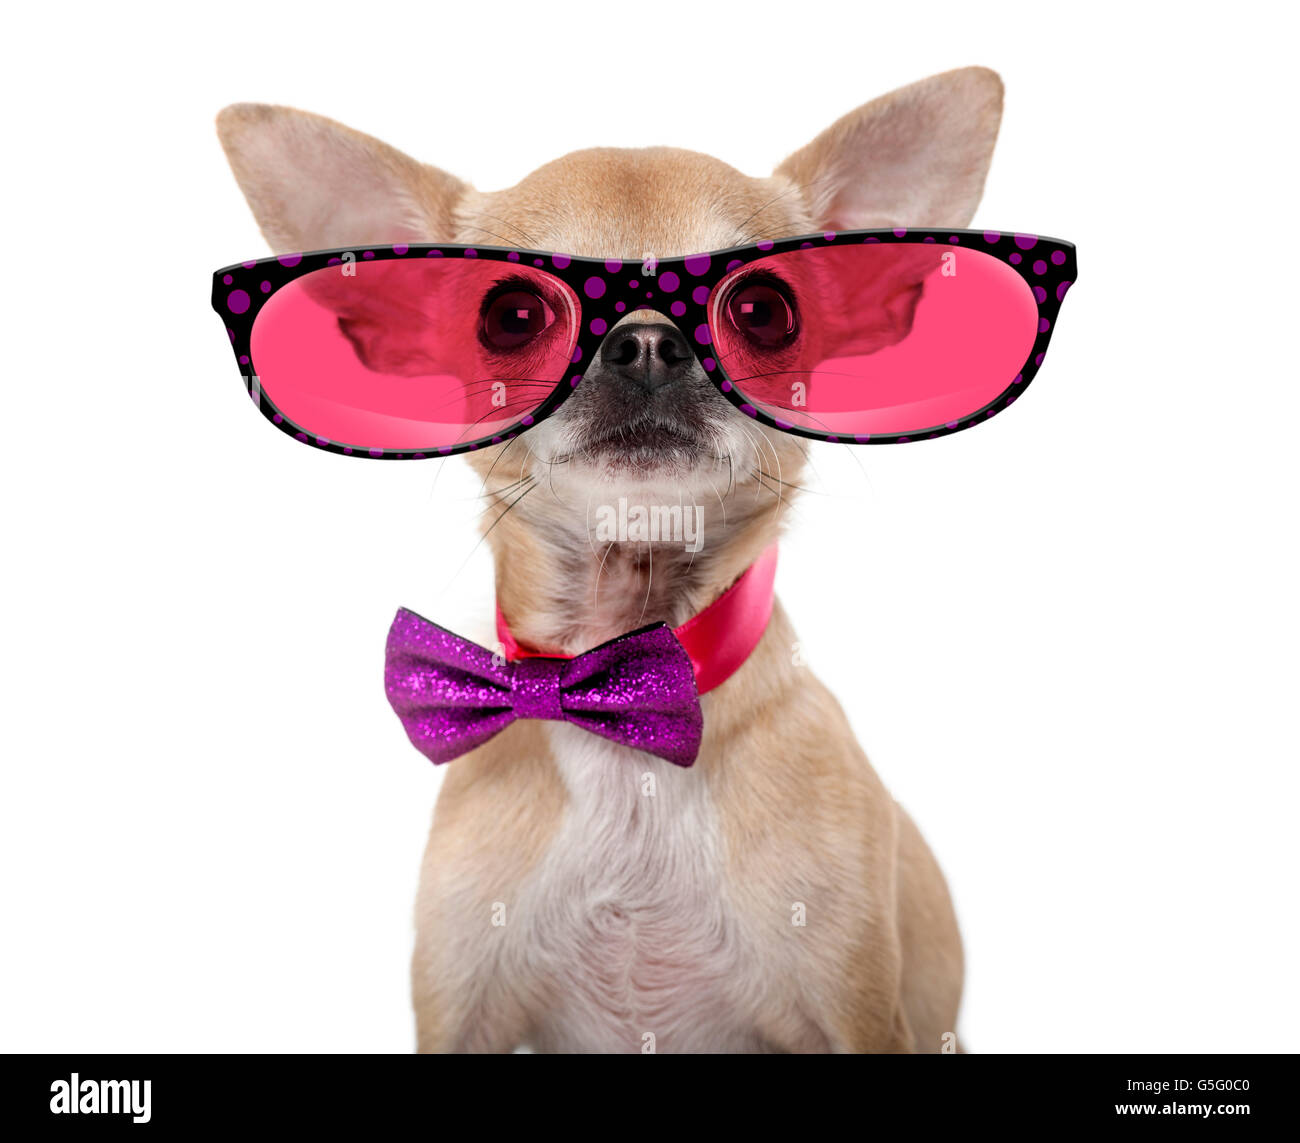 Chihuahua wearing a bow tie and glasses in front of a white background - Stock Image